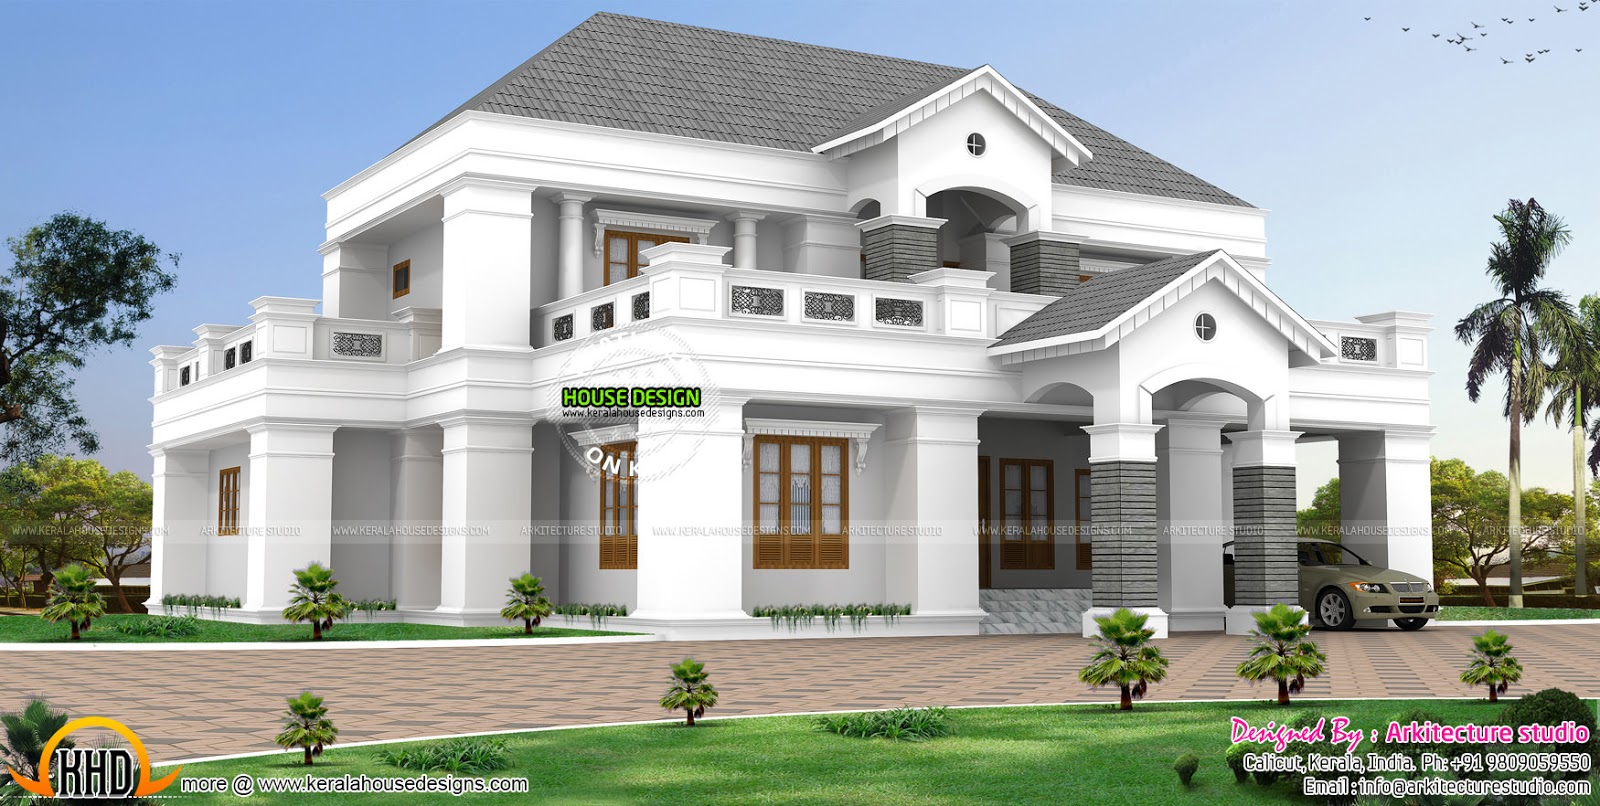 Luxurious pillar type home design kerala home design and for Types house designs